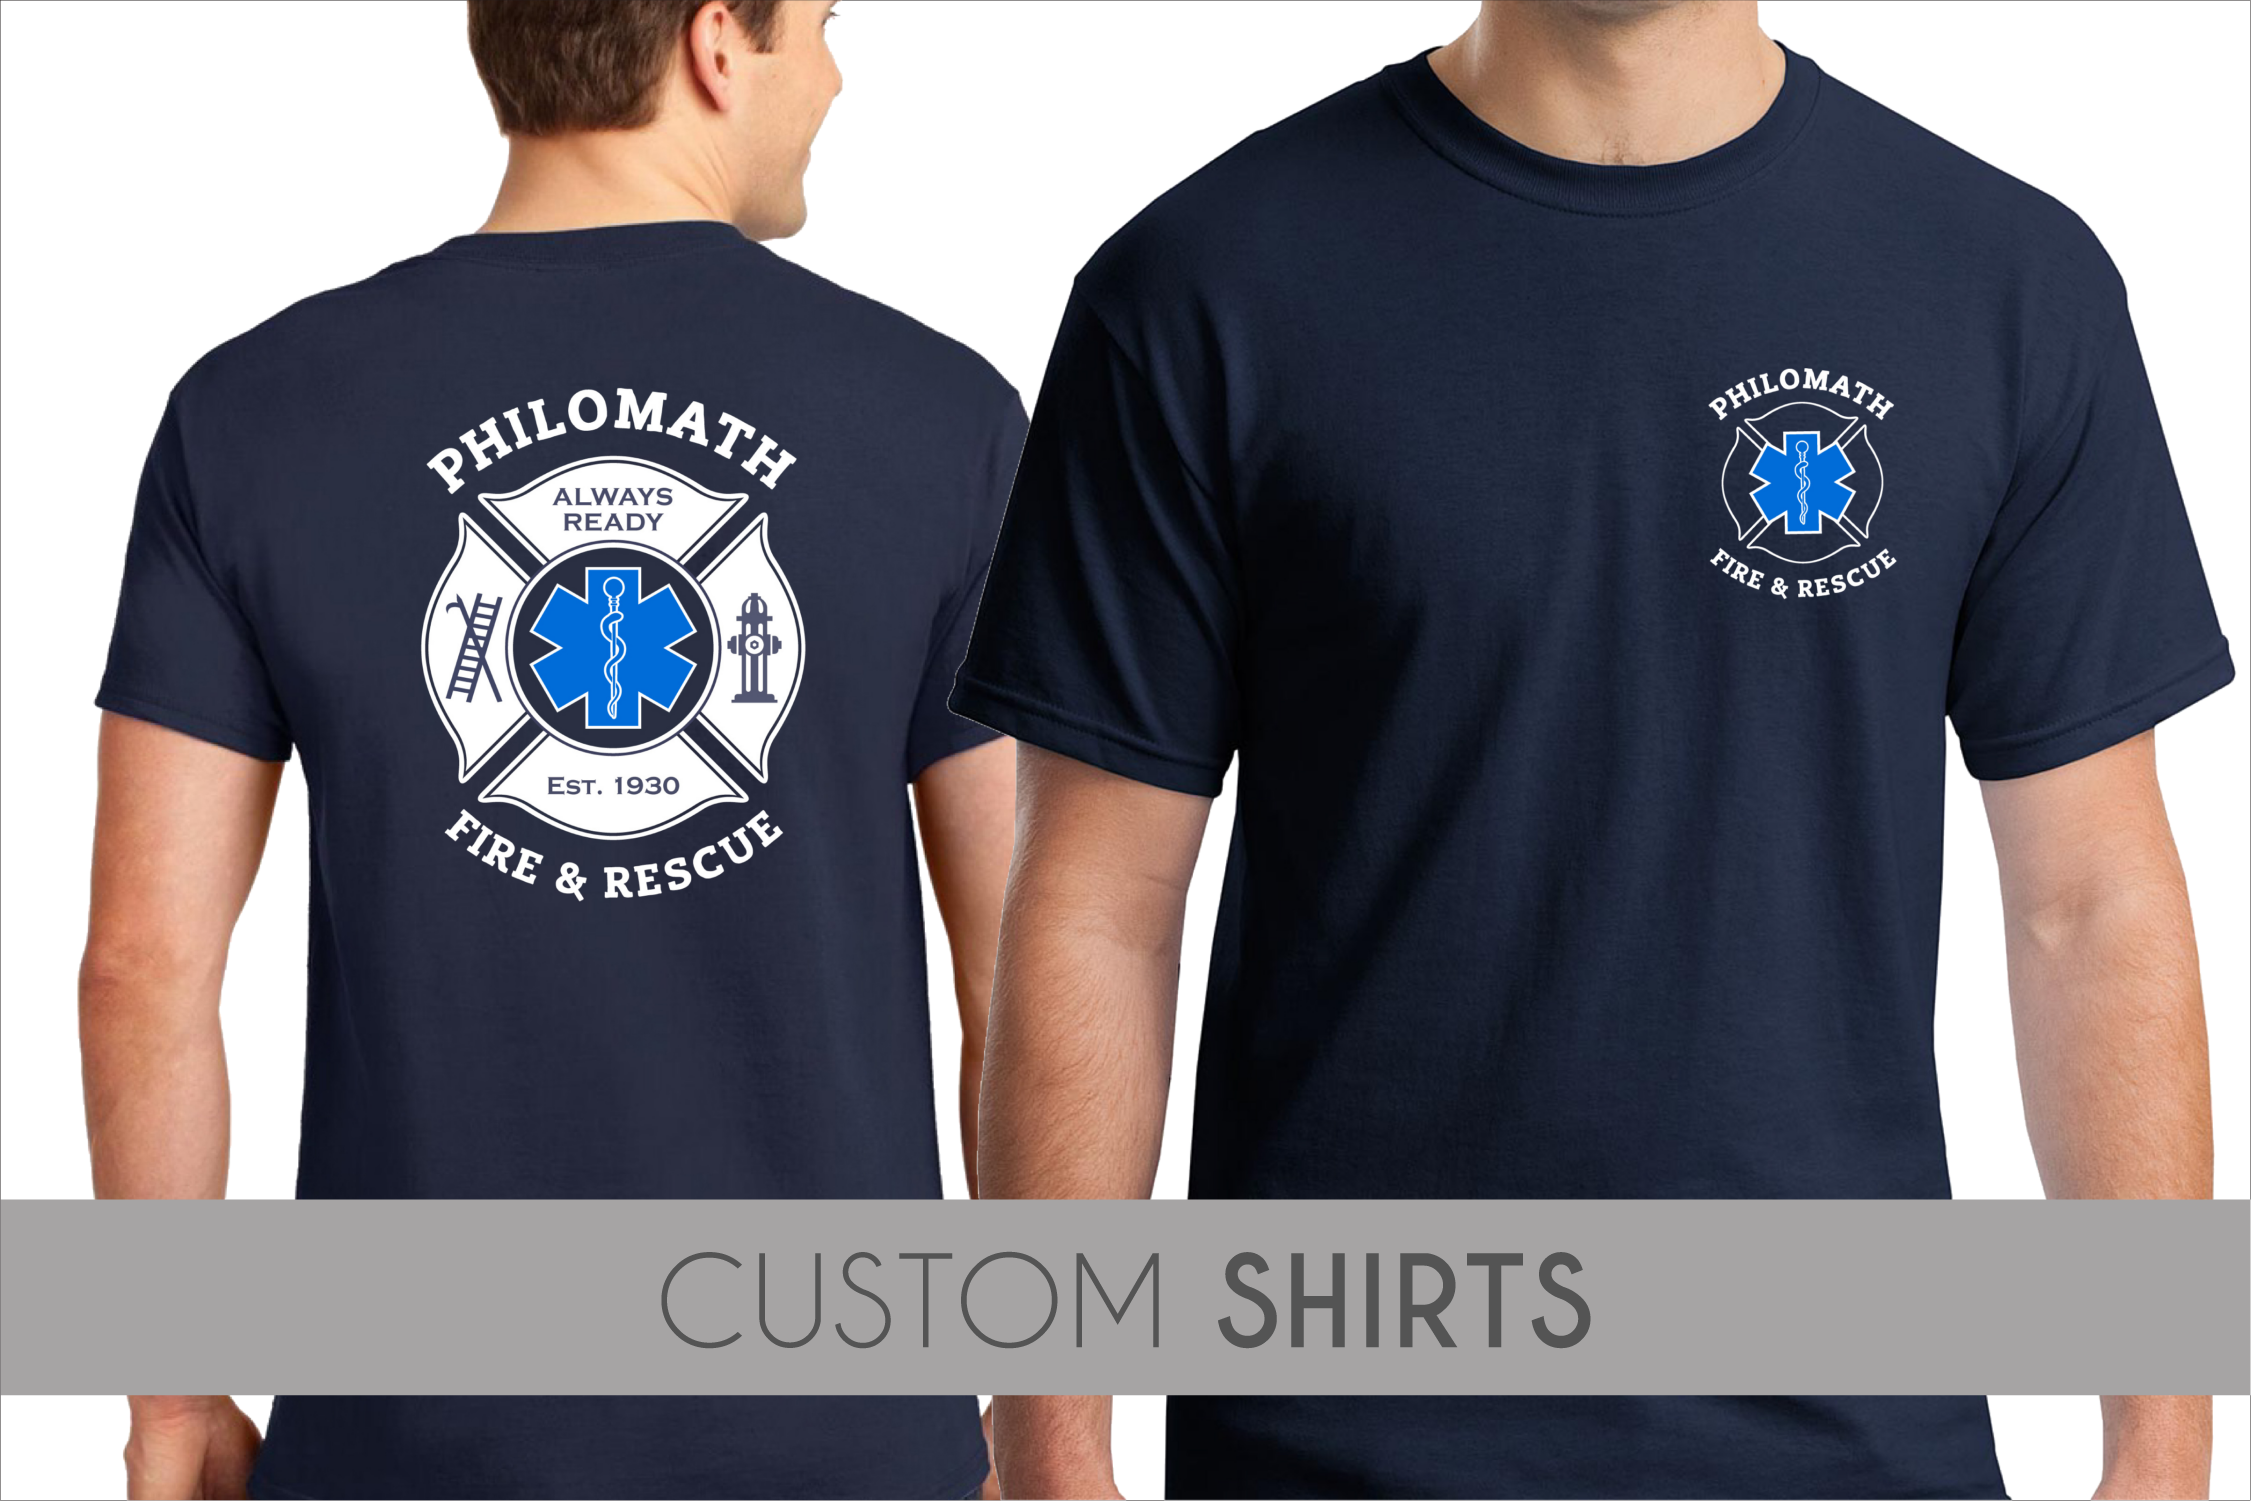 Philomath_Shirt-Graphics_pic-v1.png